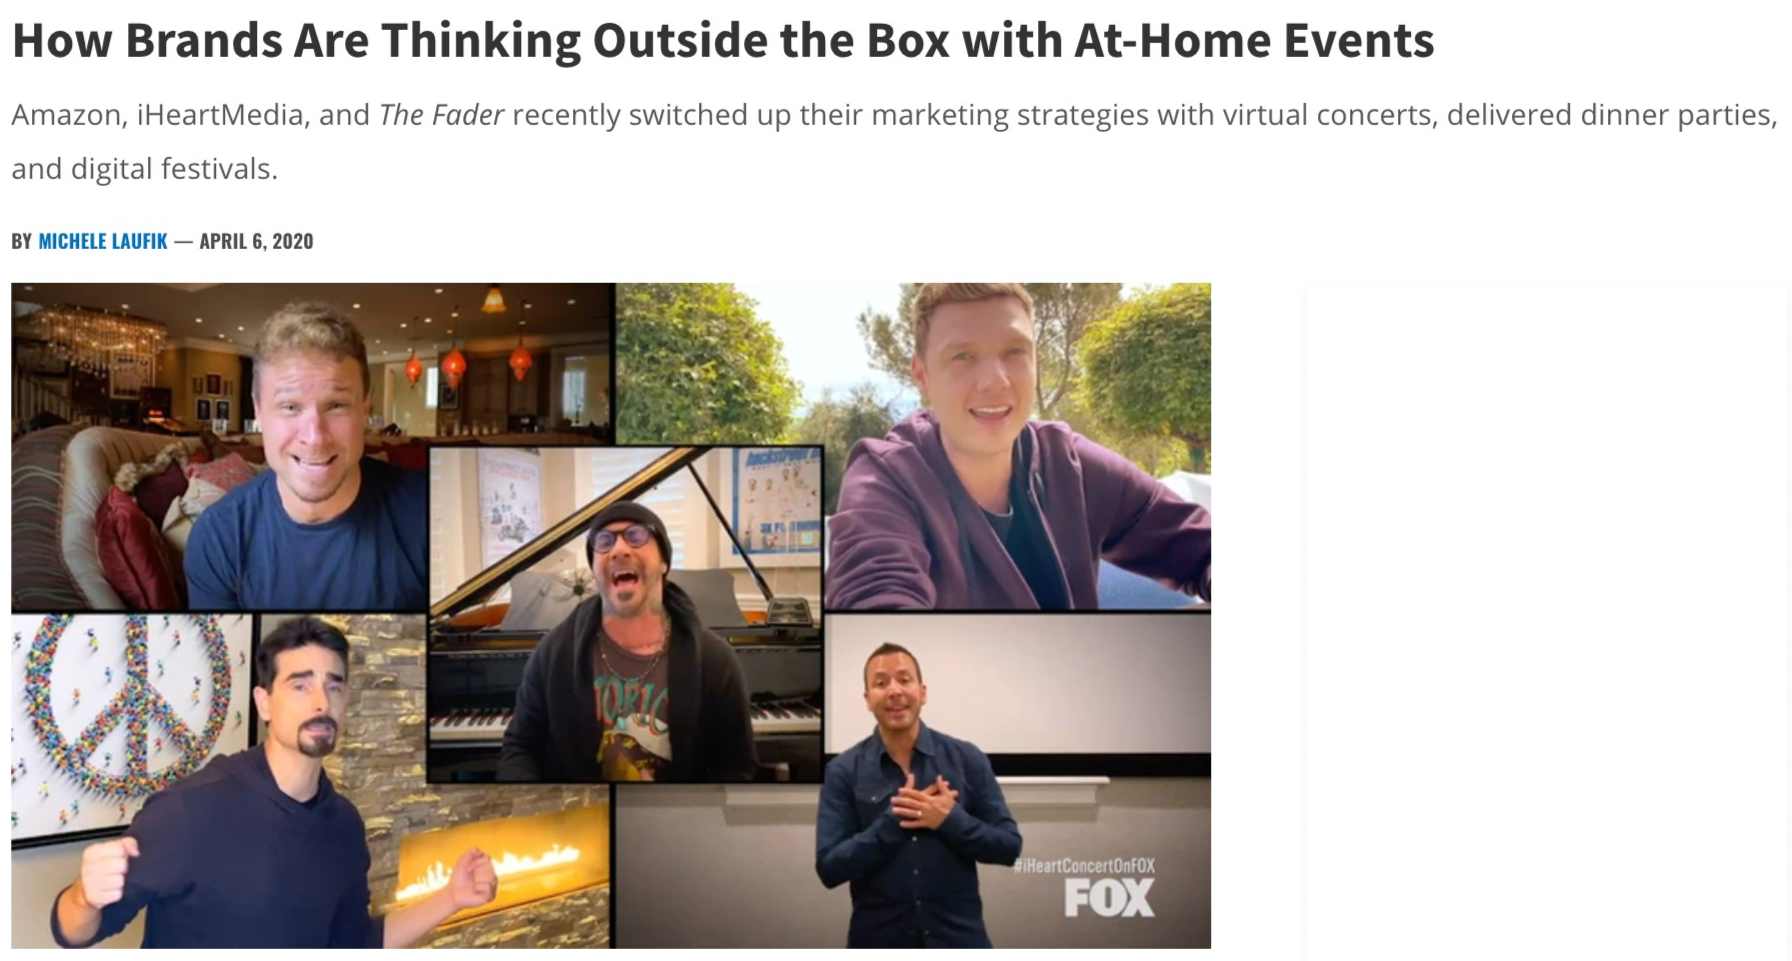 How Amazon or iHeartMedia Are Hosting Virtual At-Home Events